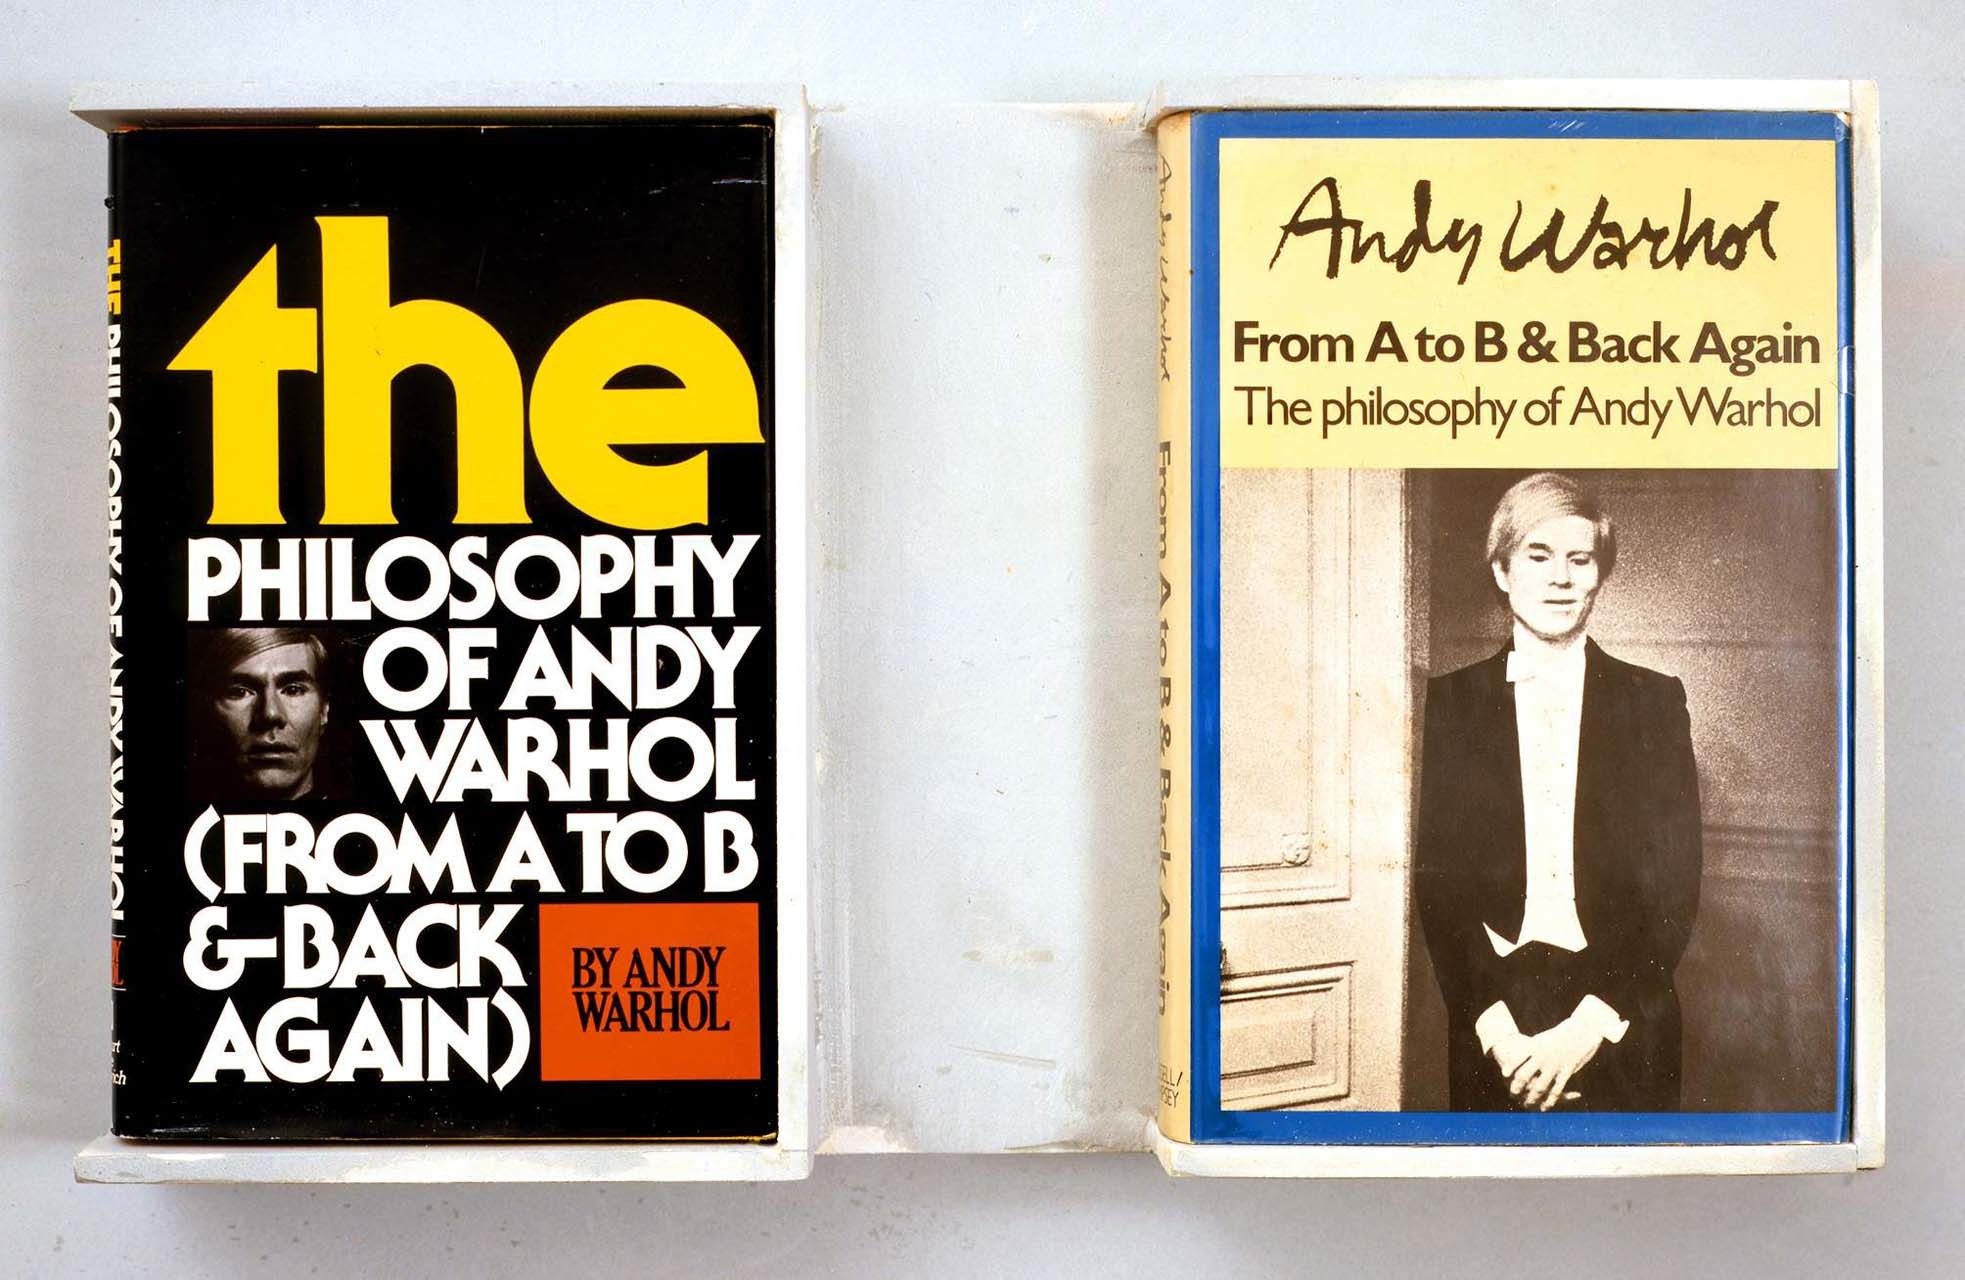 "<div class=""artwork_caption""><p>American English (The Philosophy of Andy Warhol; from A to B & back again), 2006</p></div>"